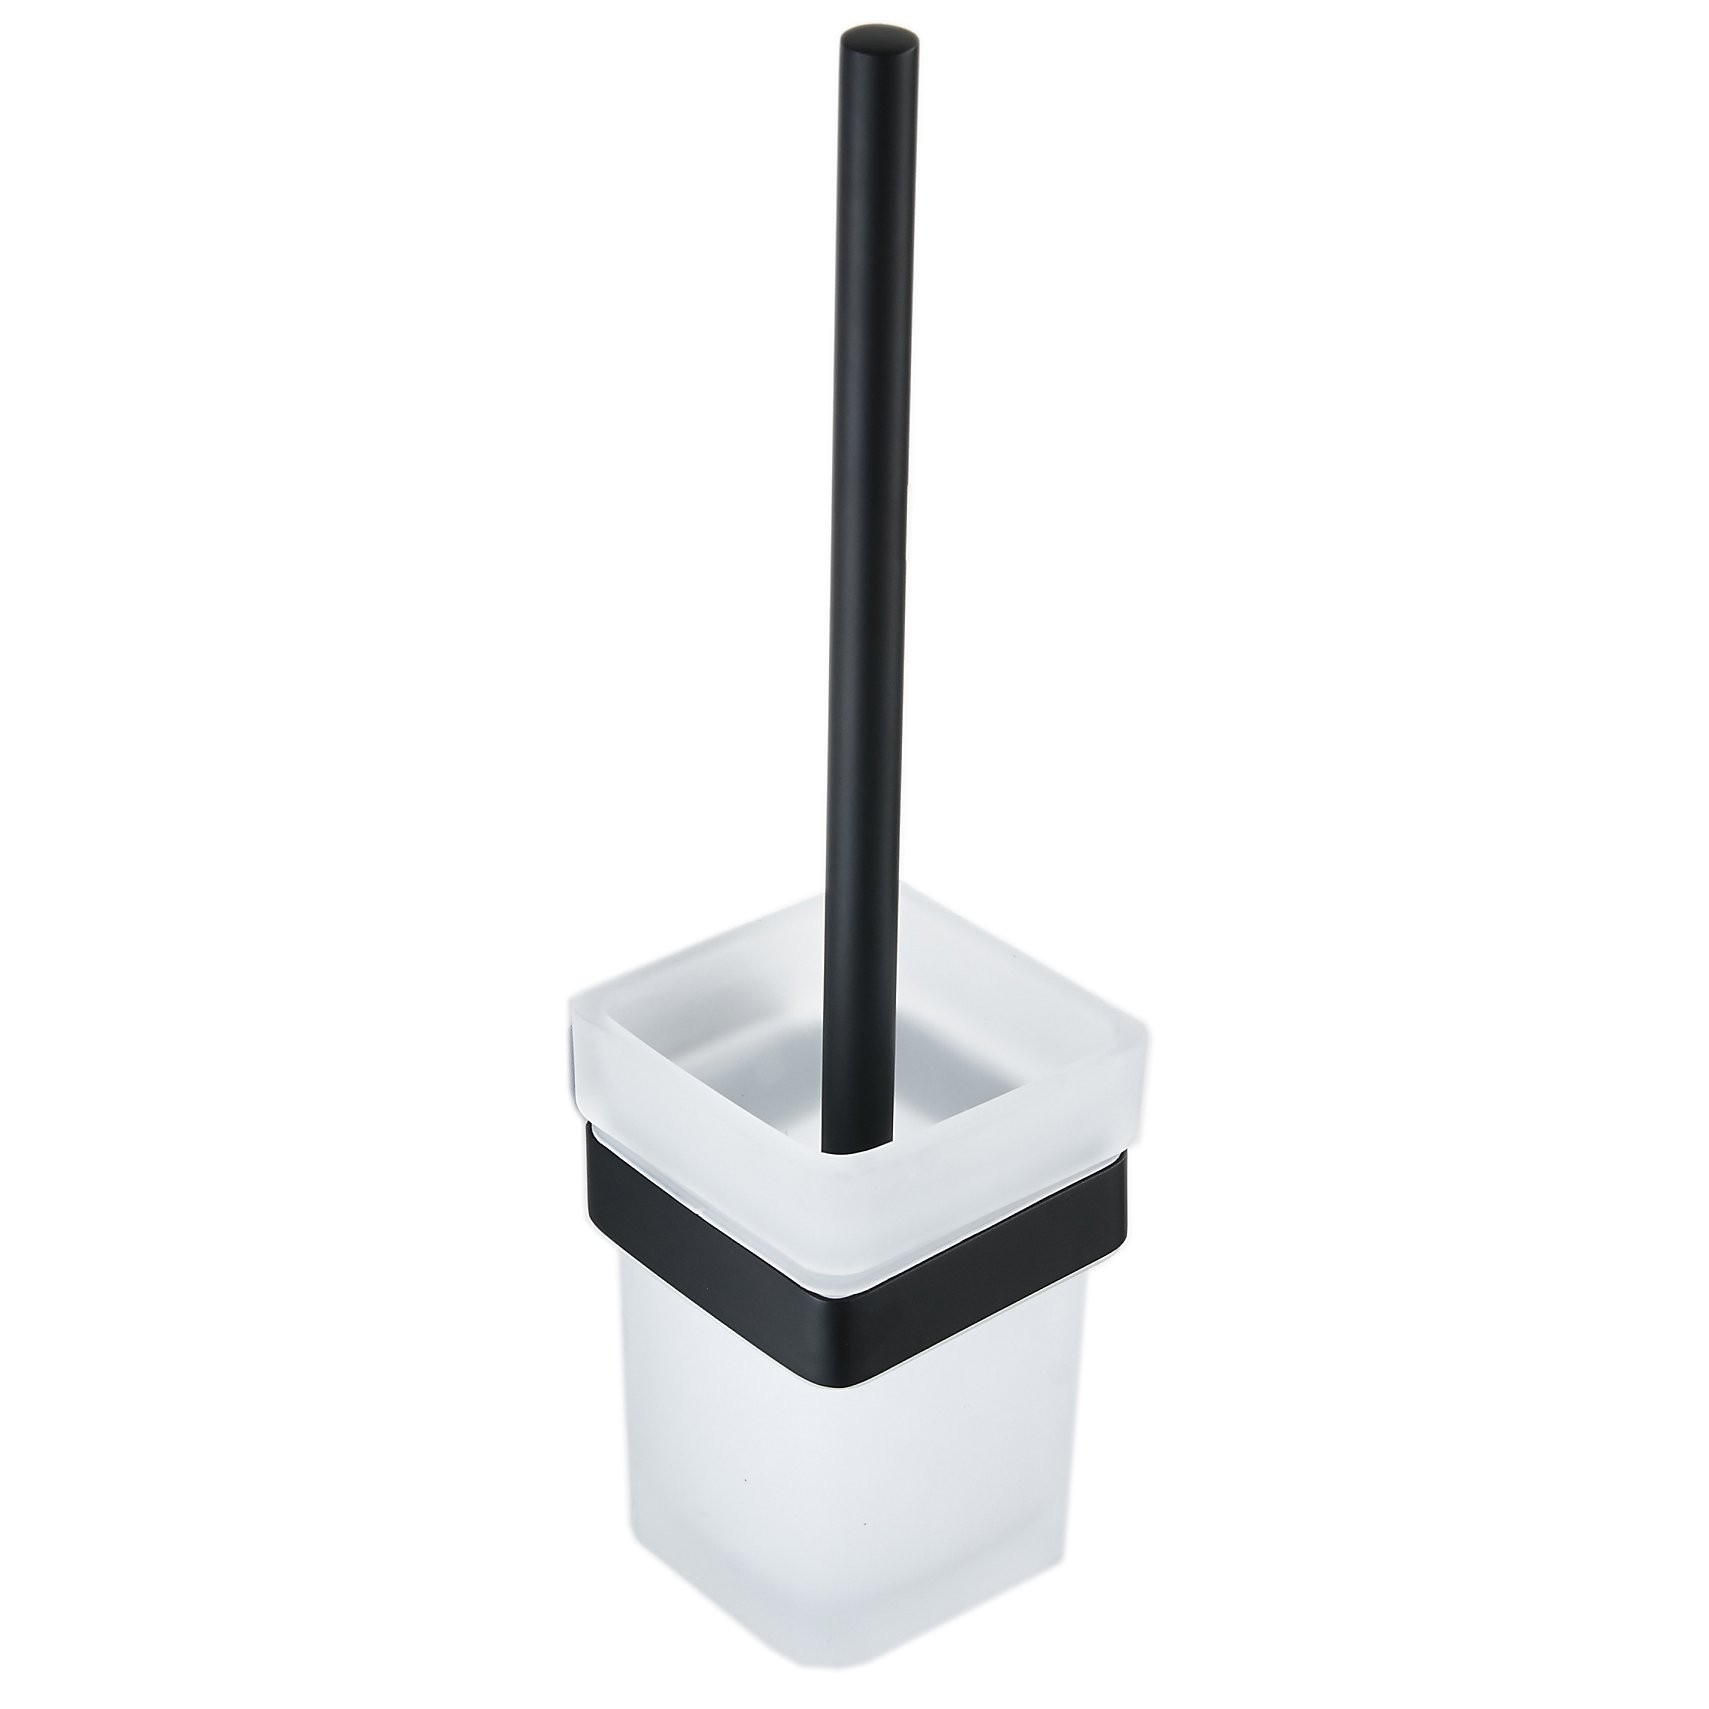 Hiendure Toilet Brushed and Holder, Bathroom Sets with Frosted Glass Toilet Bowl and Stainless Steel Toilet Brush Handle Wall Mounted Black Painting